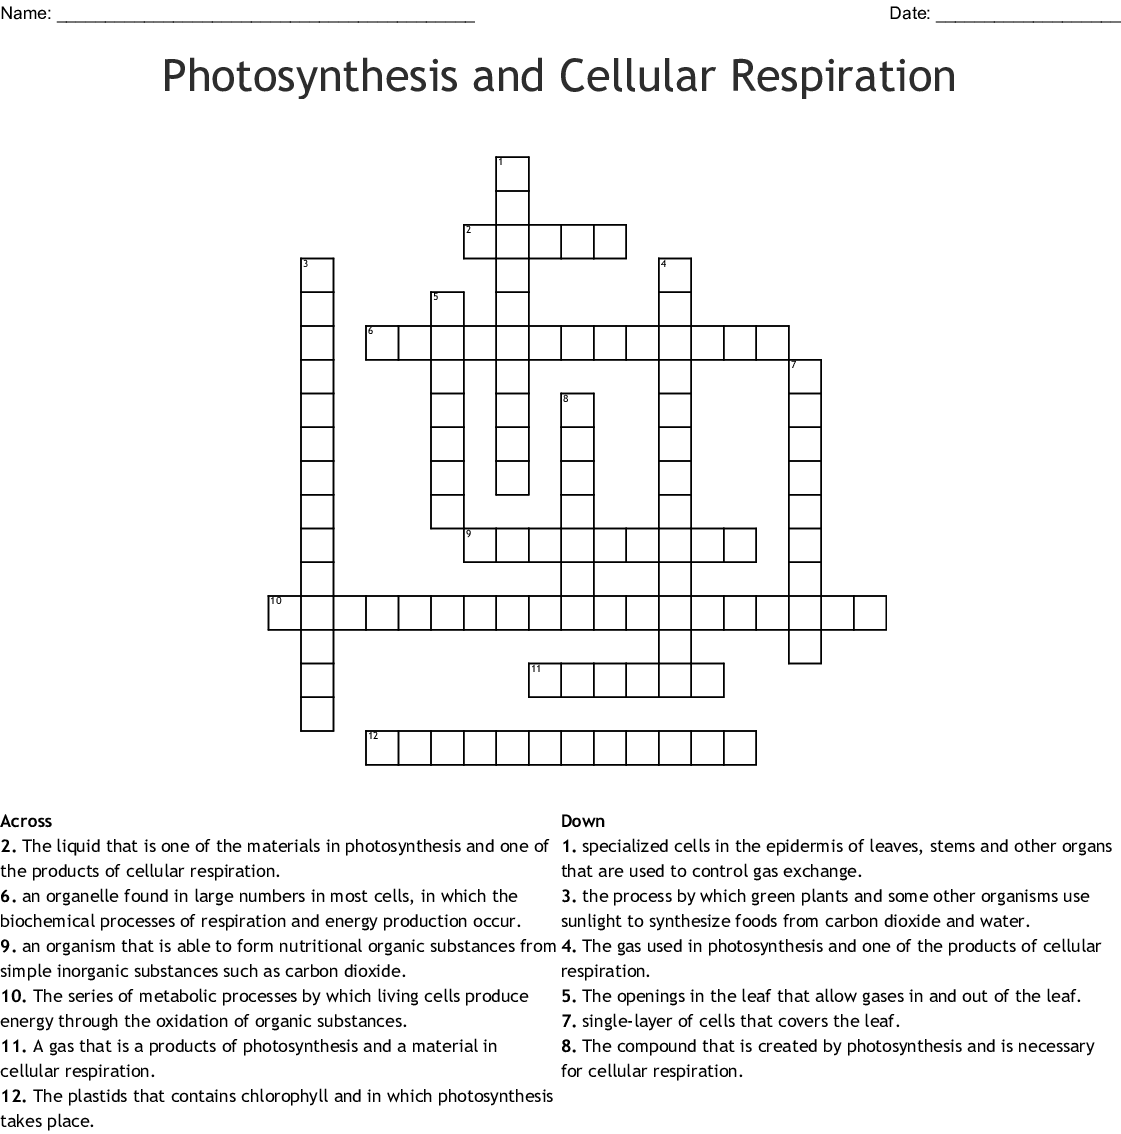 Photosynthesis And Cellular Respiration Crossword